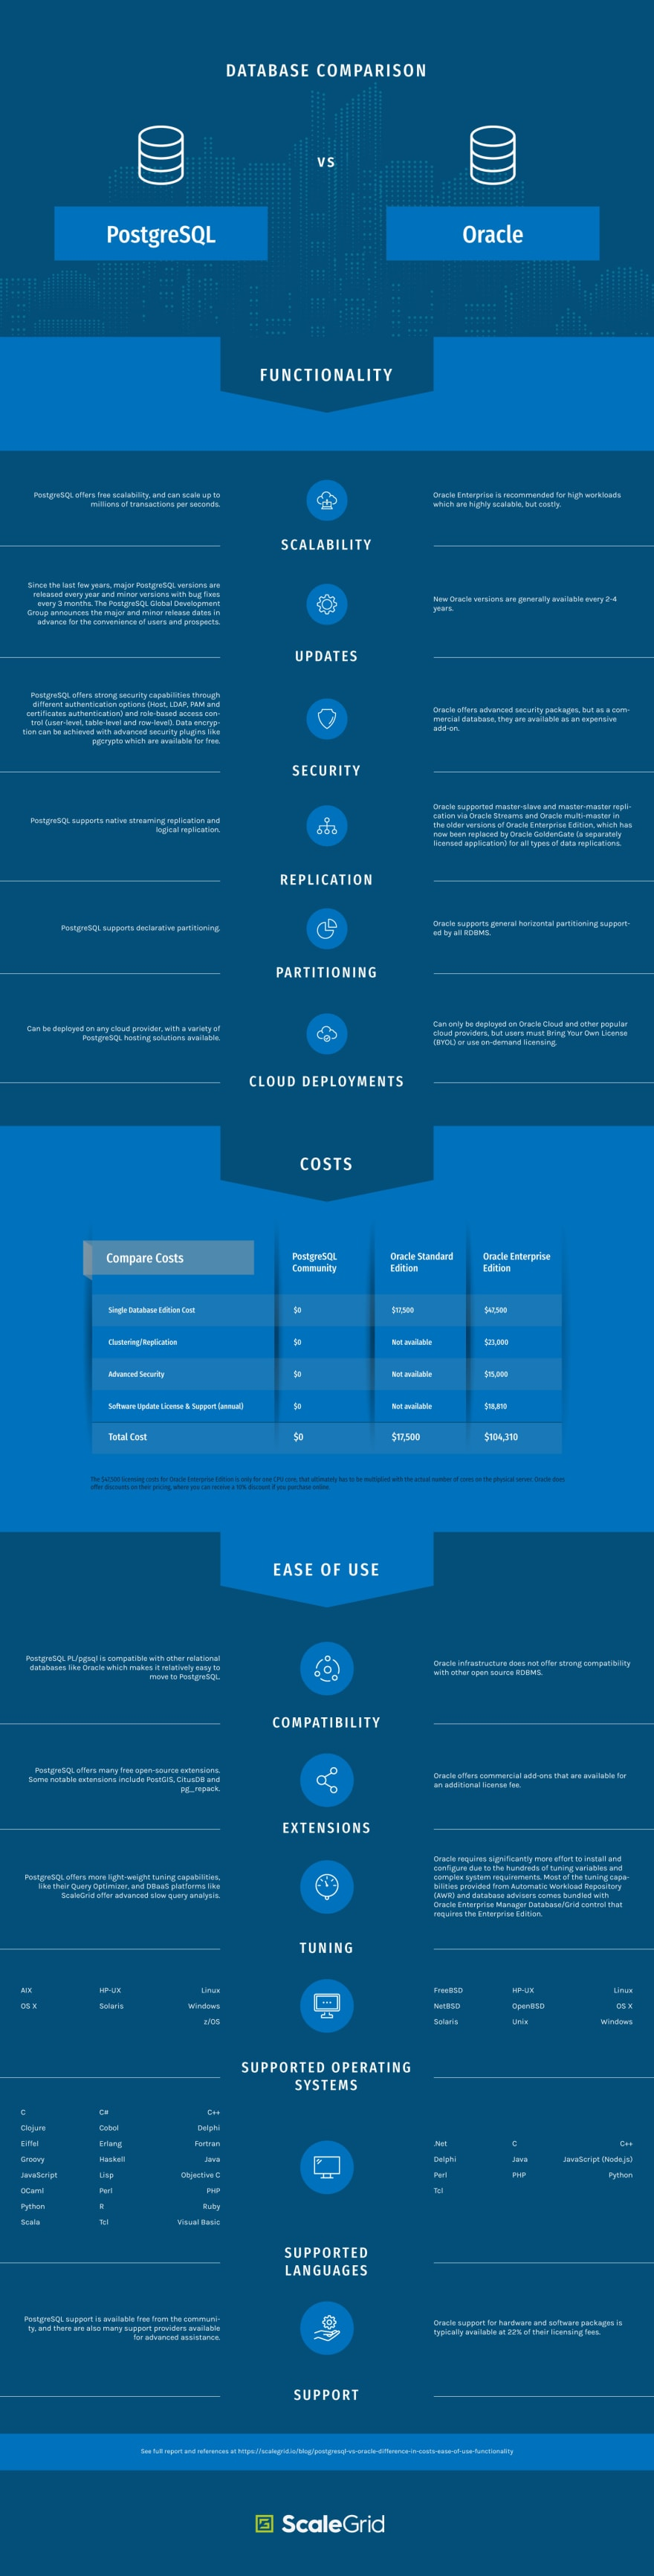 PostgreSQL vs Oracle Database Infographic: Compare Costs, Functionality and Ease of Use - ScaleGrid Blog